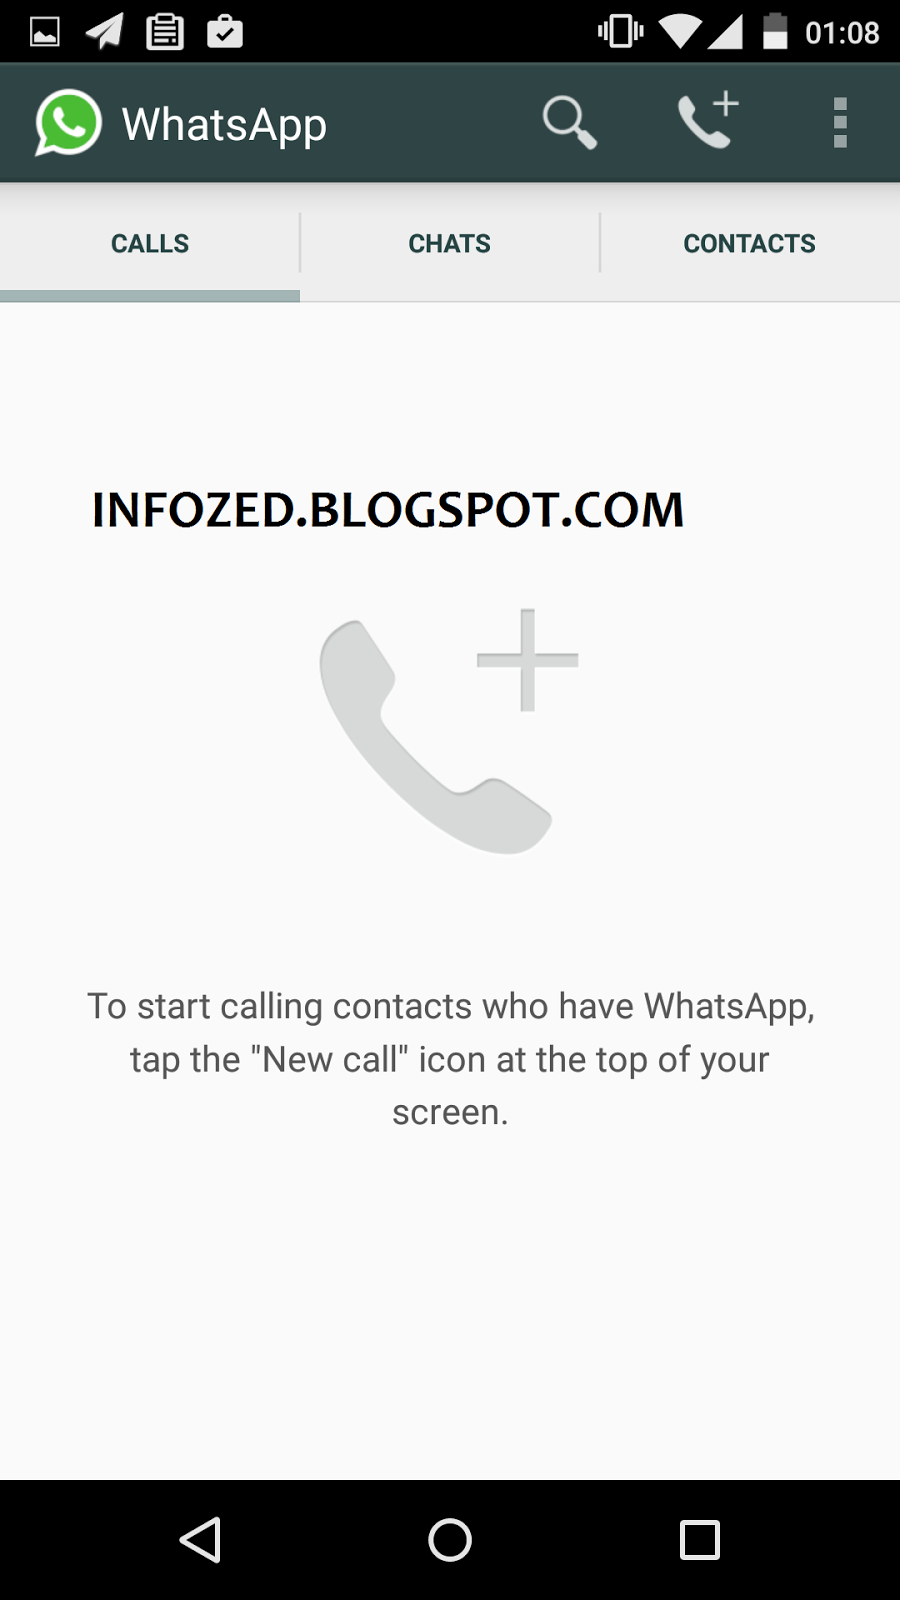 Phone Free Whatsapp For Android Phones whatsapp starting free voice calls in latest update infozed after introducing the features now will be line of other calling software like skype and viber for audi